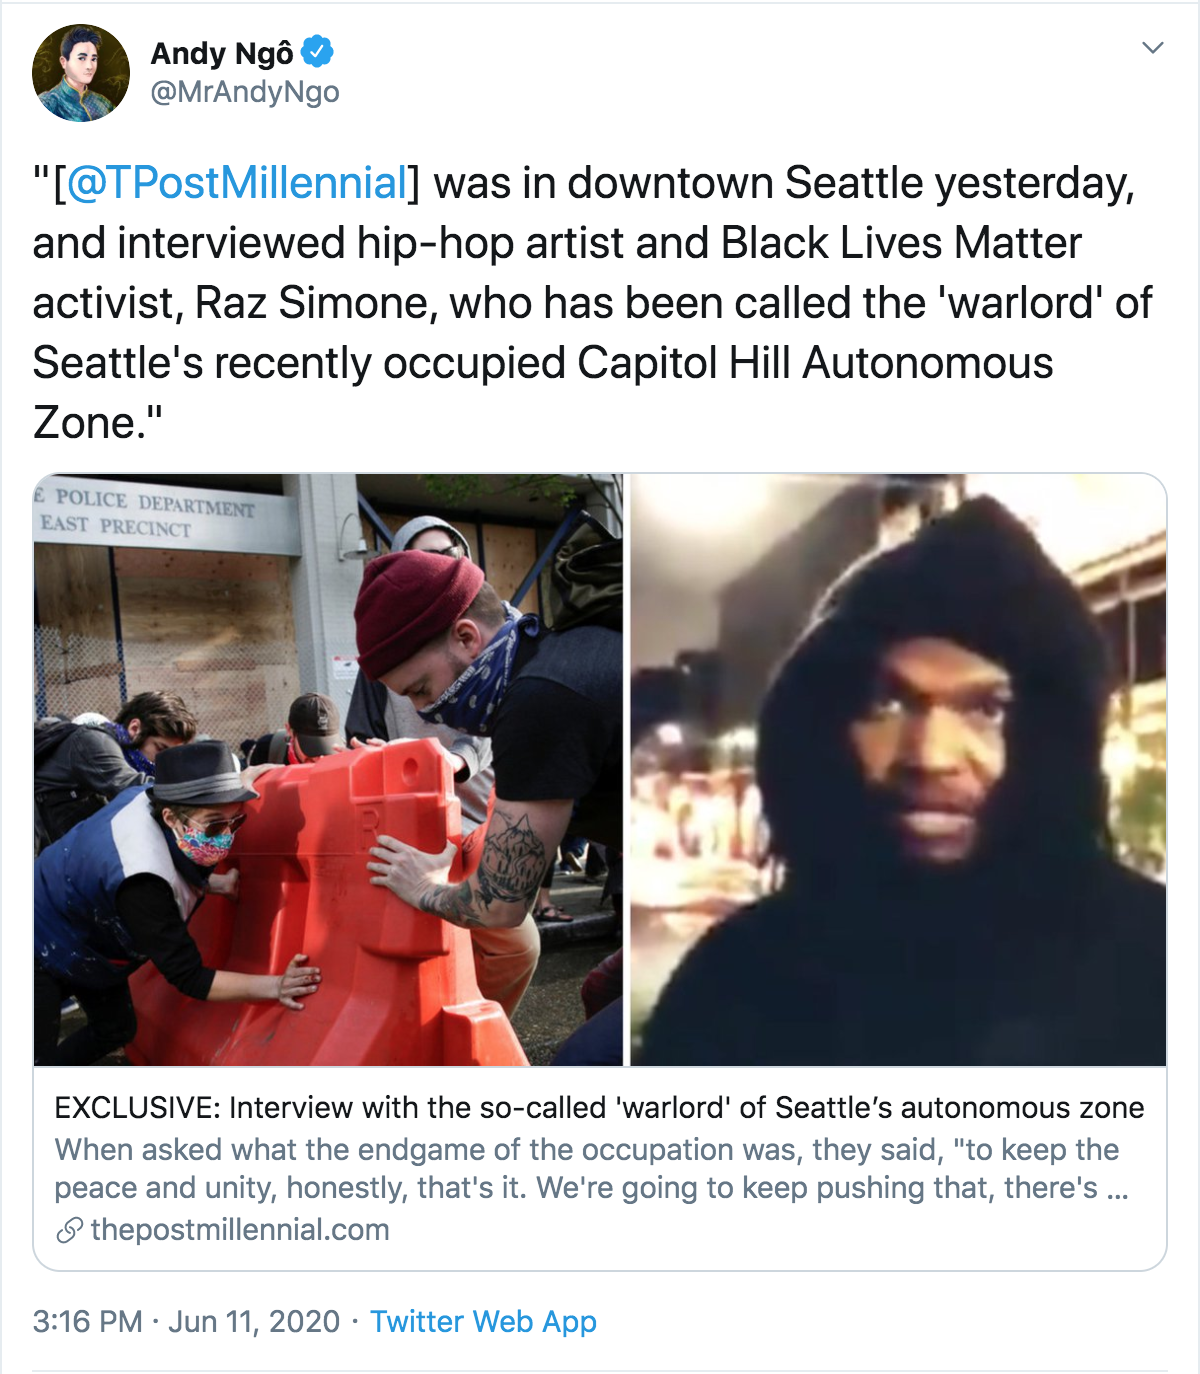 Andy Ngo tweet about the CHAZ claiming Raz Simone is a warlord